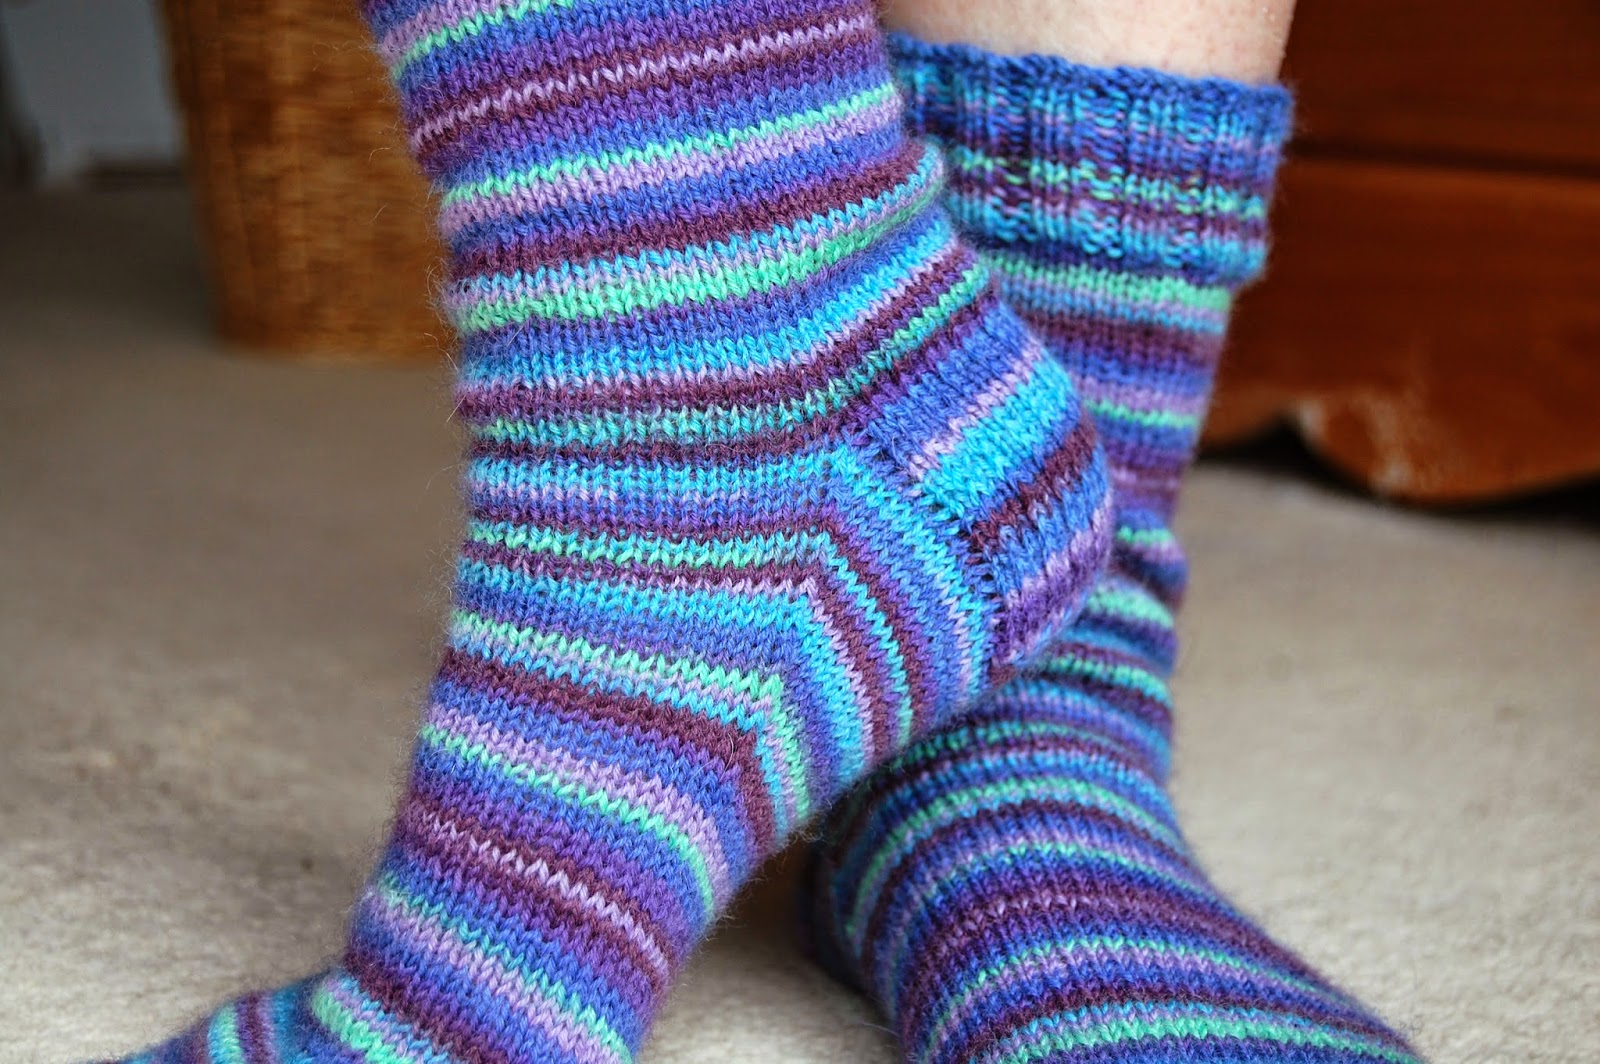 Socks Knitting Pattern : Winwick Mum: Basic 4ply sock pattern and tutorial - easy beginner sock knitting!